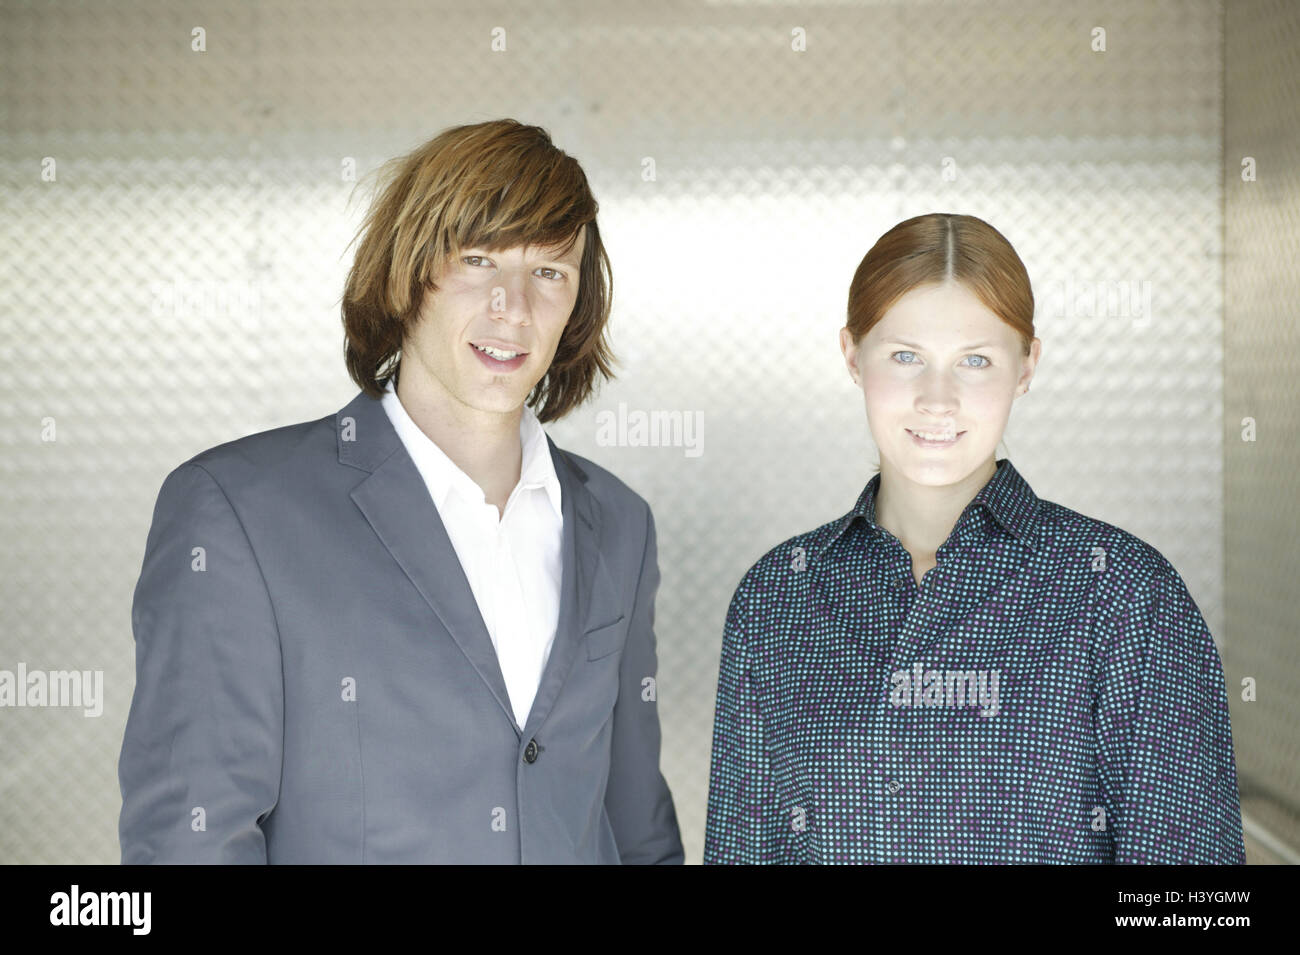 Couple, young, smile, half portrait, 15 - 20 years, woman, young, blouse, man, 20-30 years, sports jacket, suit, - Stock Image